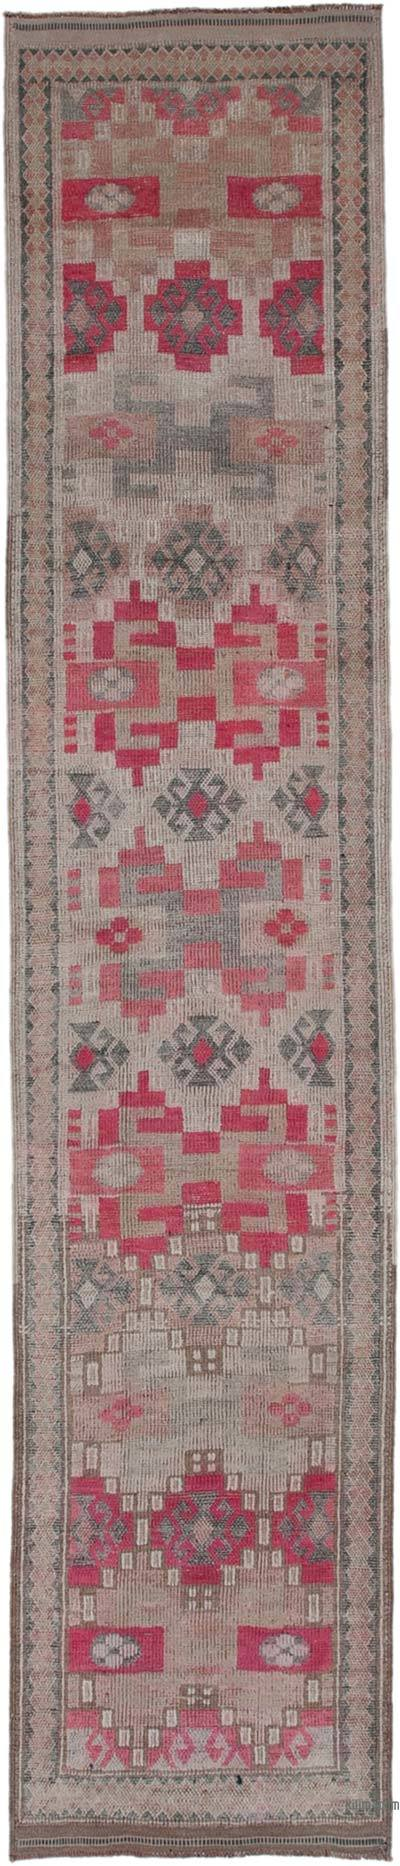 "Vintage Turkish Runner Rug - 2' 11"" x 14' 2"" (35 in. x 170 in.)"